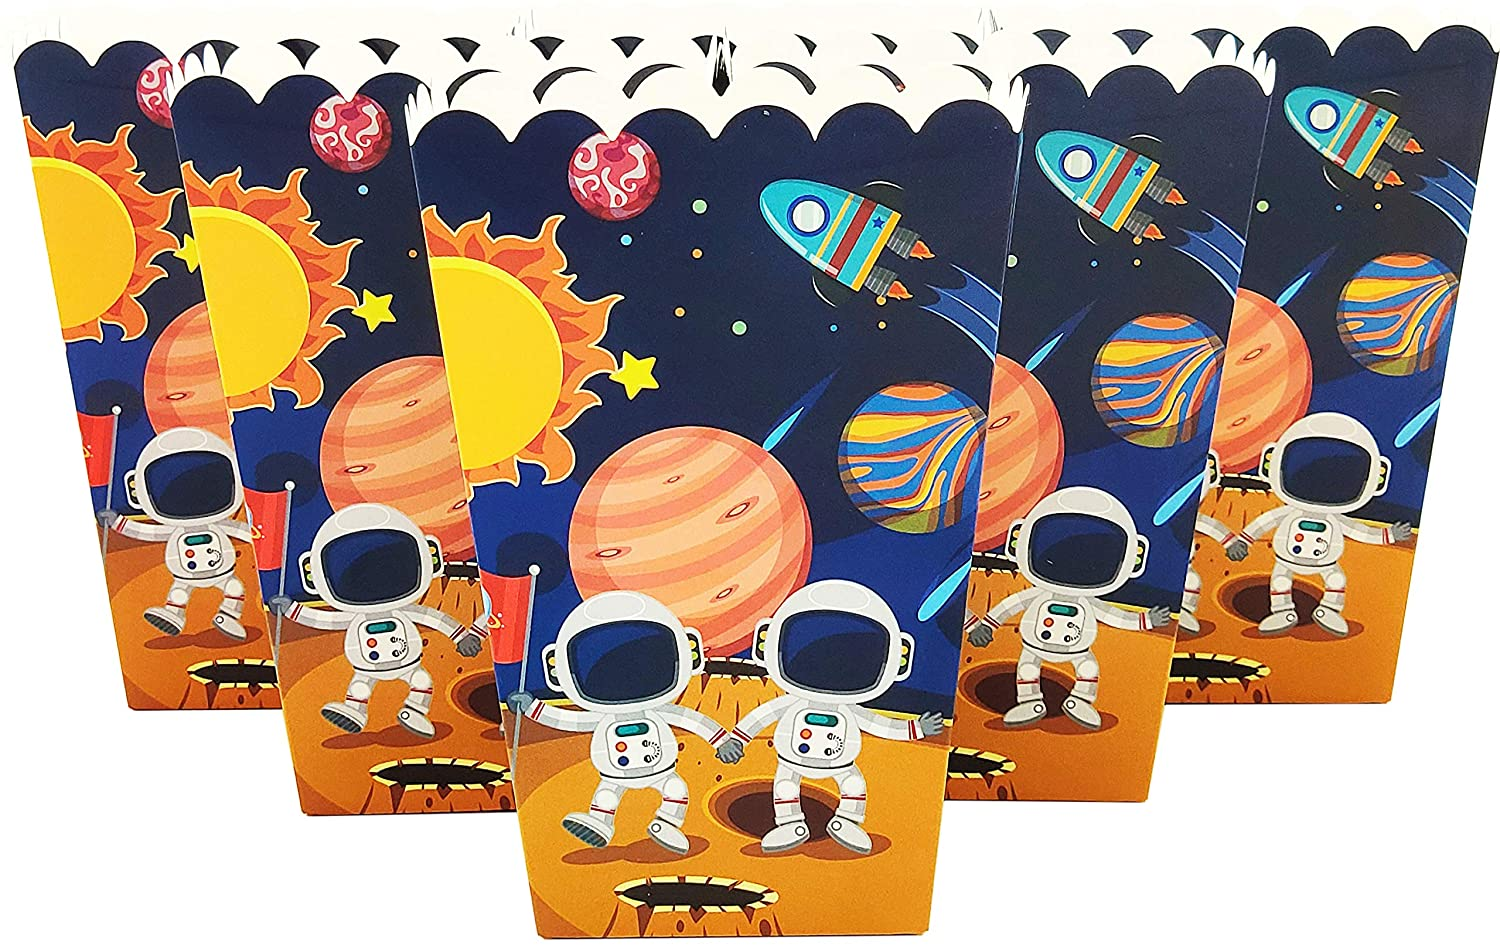 24 Piece Popcorn Box Snack Box for Kids Children Astronaut Solar Space Birthday Party, Cake Treat Gift Box Candy Cookie Containers Goodie Bag, Baby Shower Party Decoration Favors Supplies